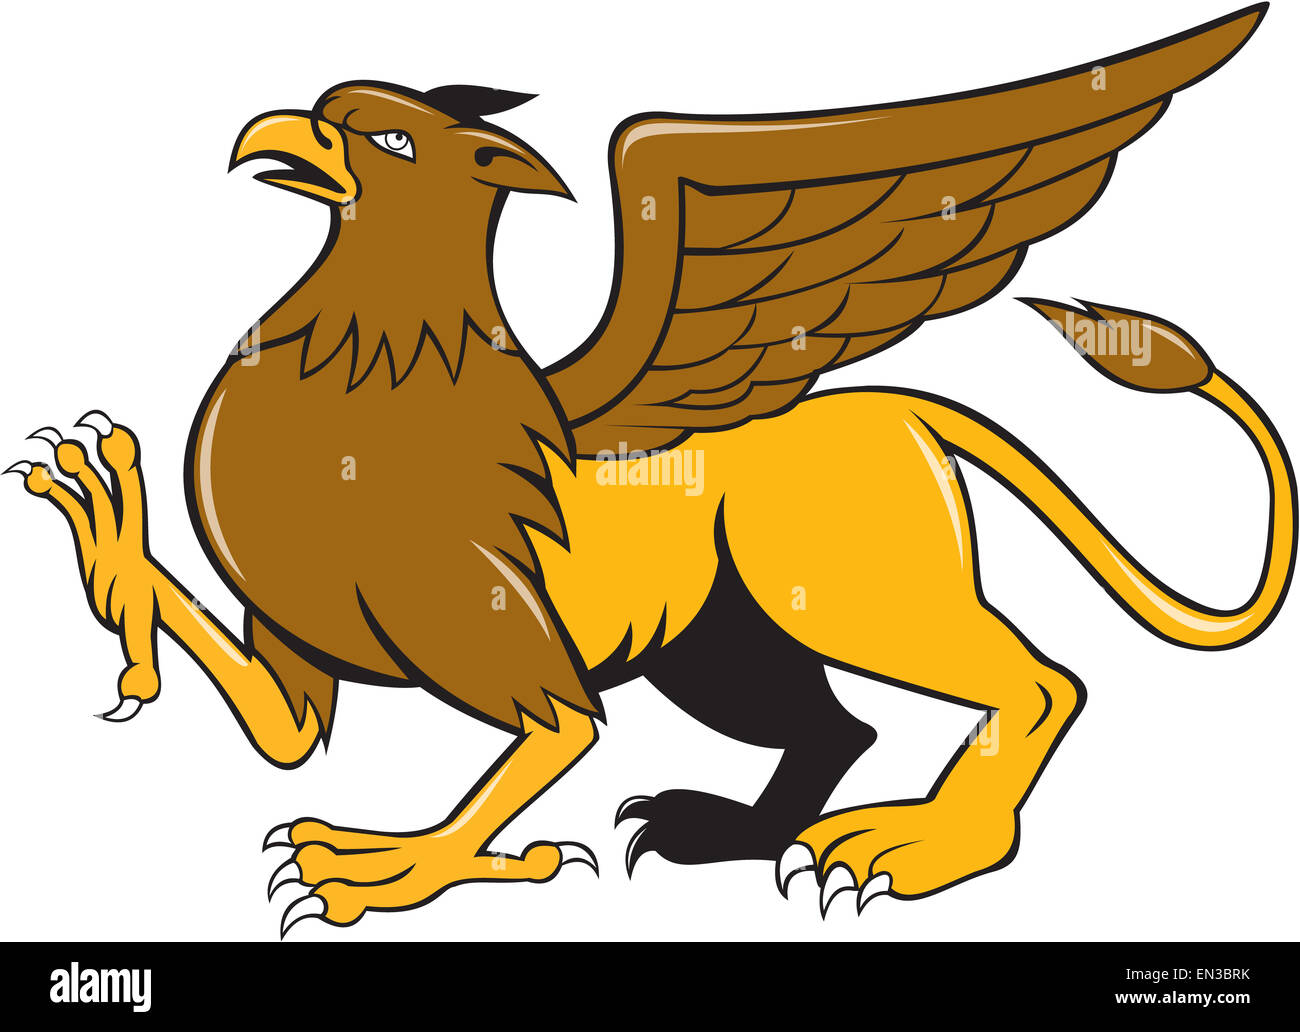 Illustration of a griffin, griffon, or gryphon marching prancing viewed from side set on isolated white background - Stock Image